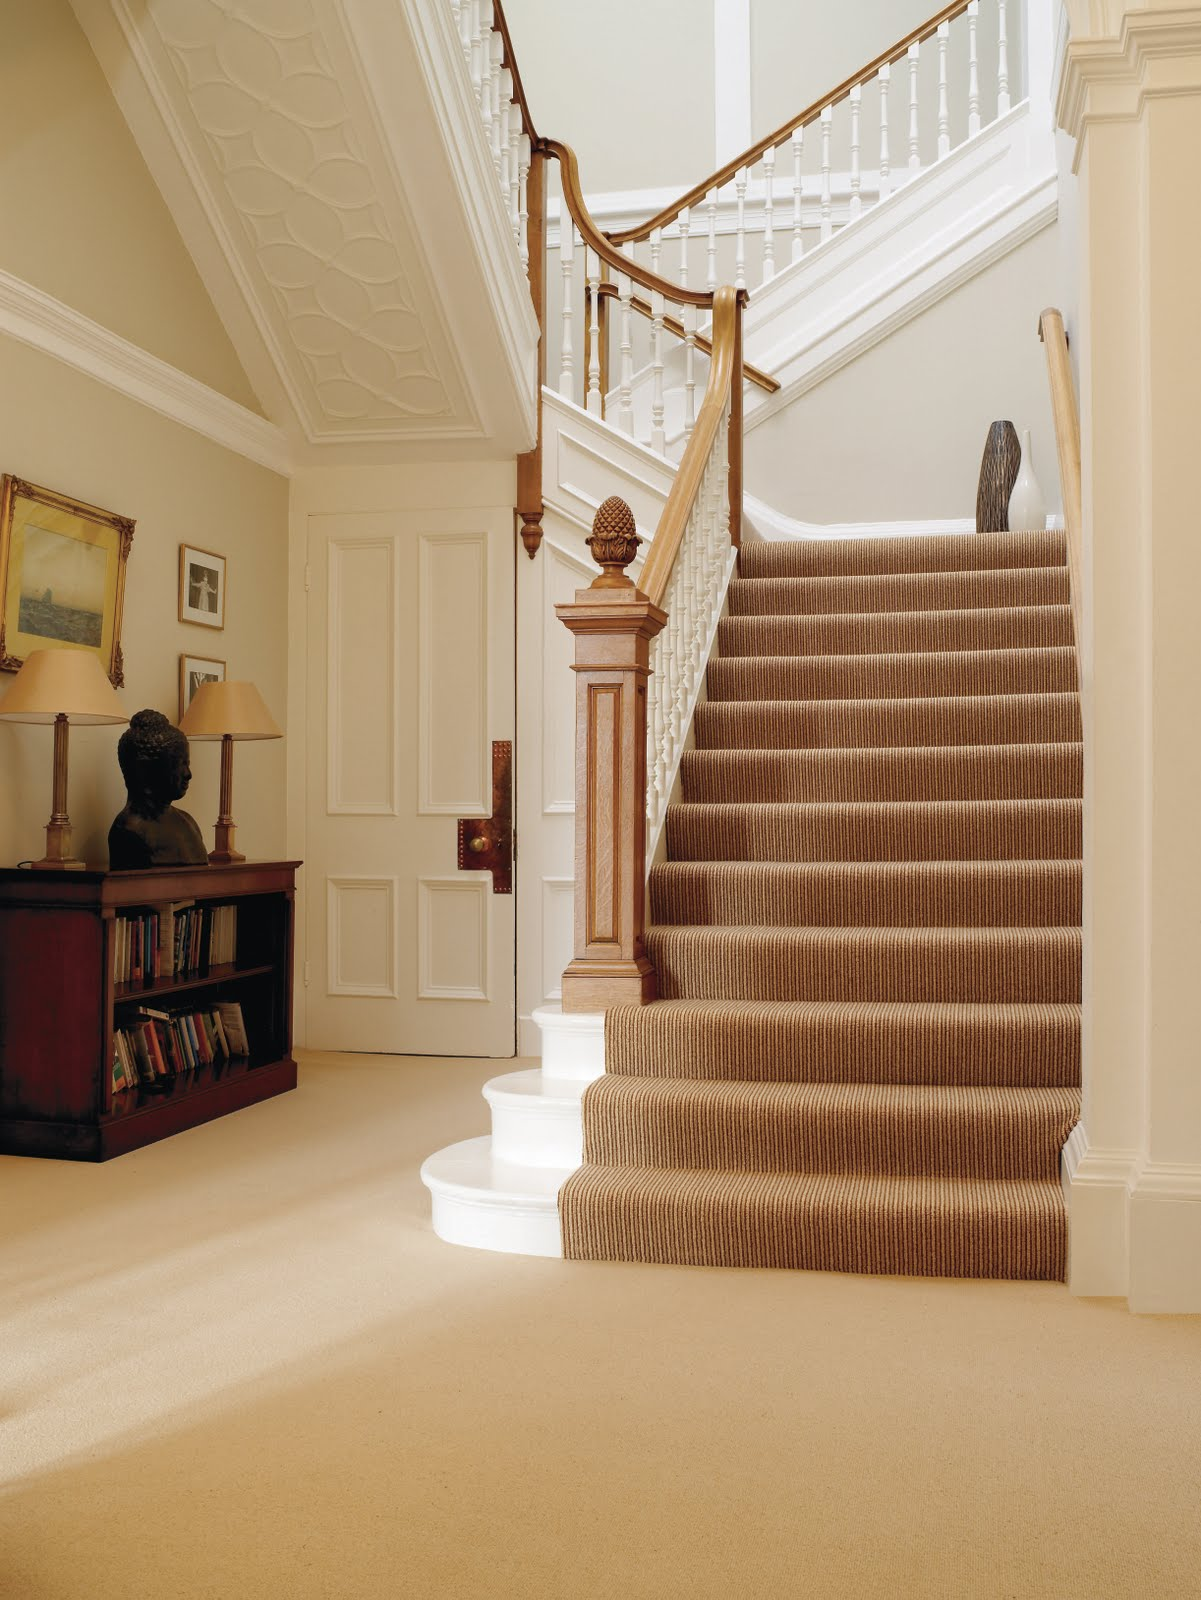 Carpeted Stairs Most Stairs Carpet Is Normally Chosen To Match The Adjacent Rooms As How To Clean Carpet Carpet Cleaning Hacks Stairway Carpet